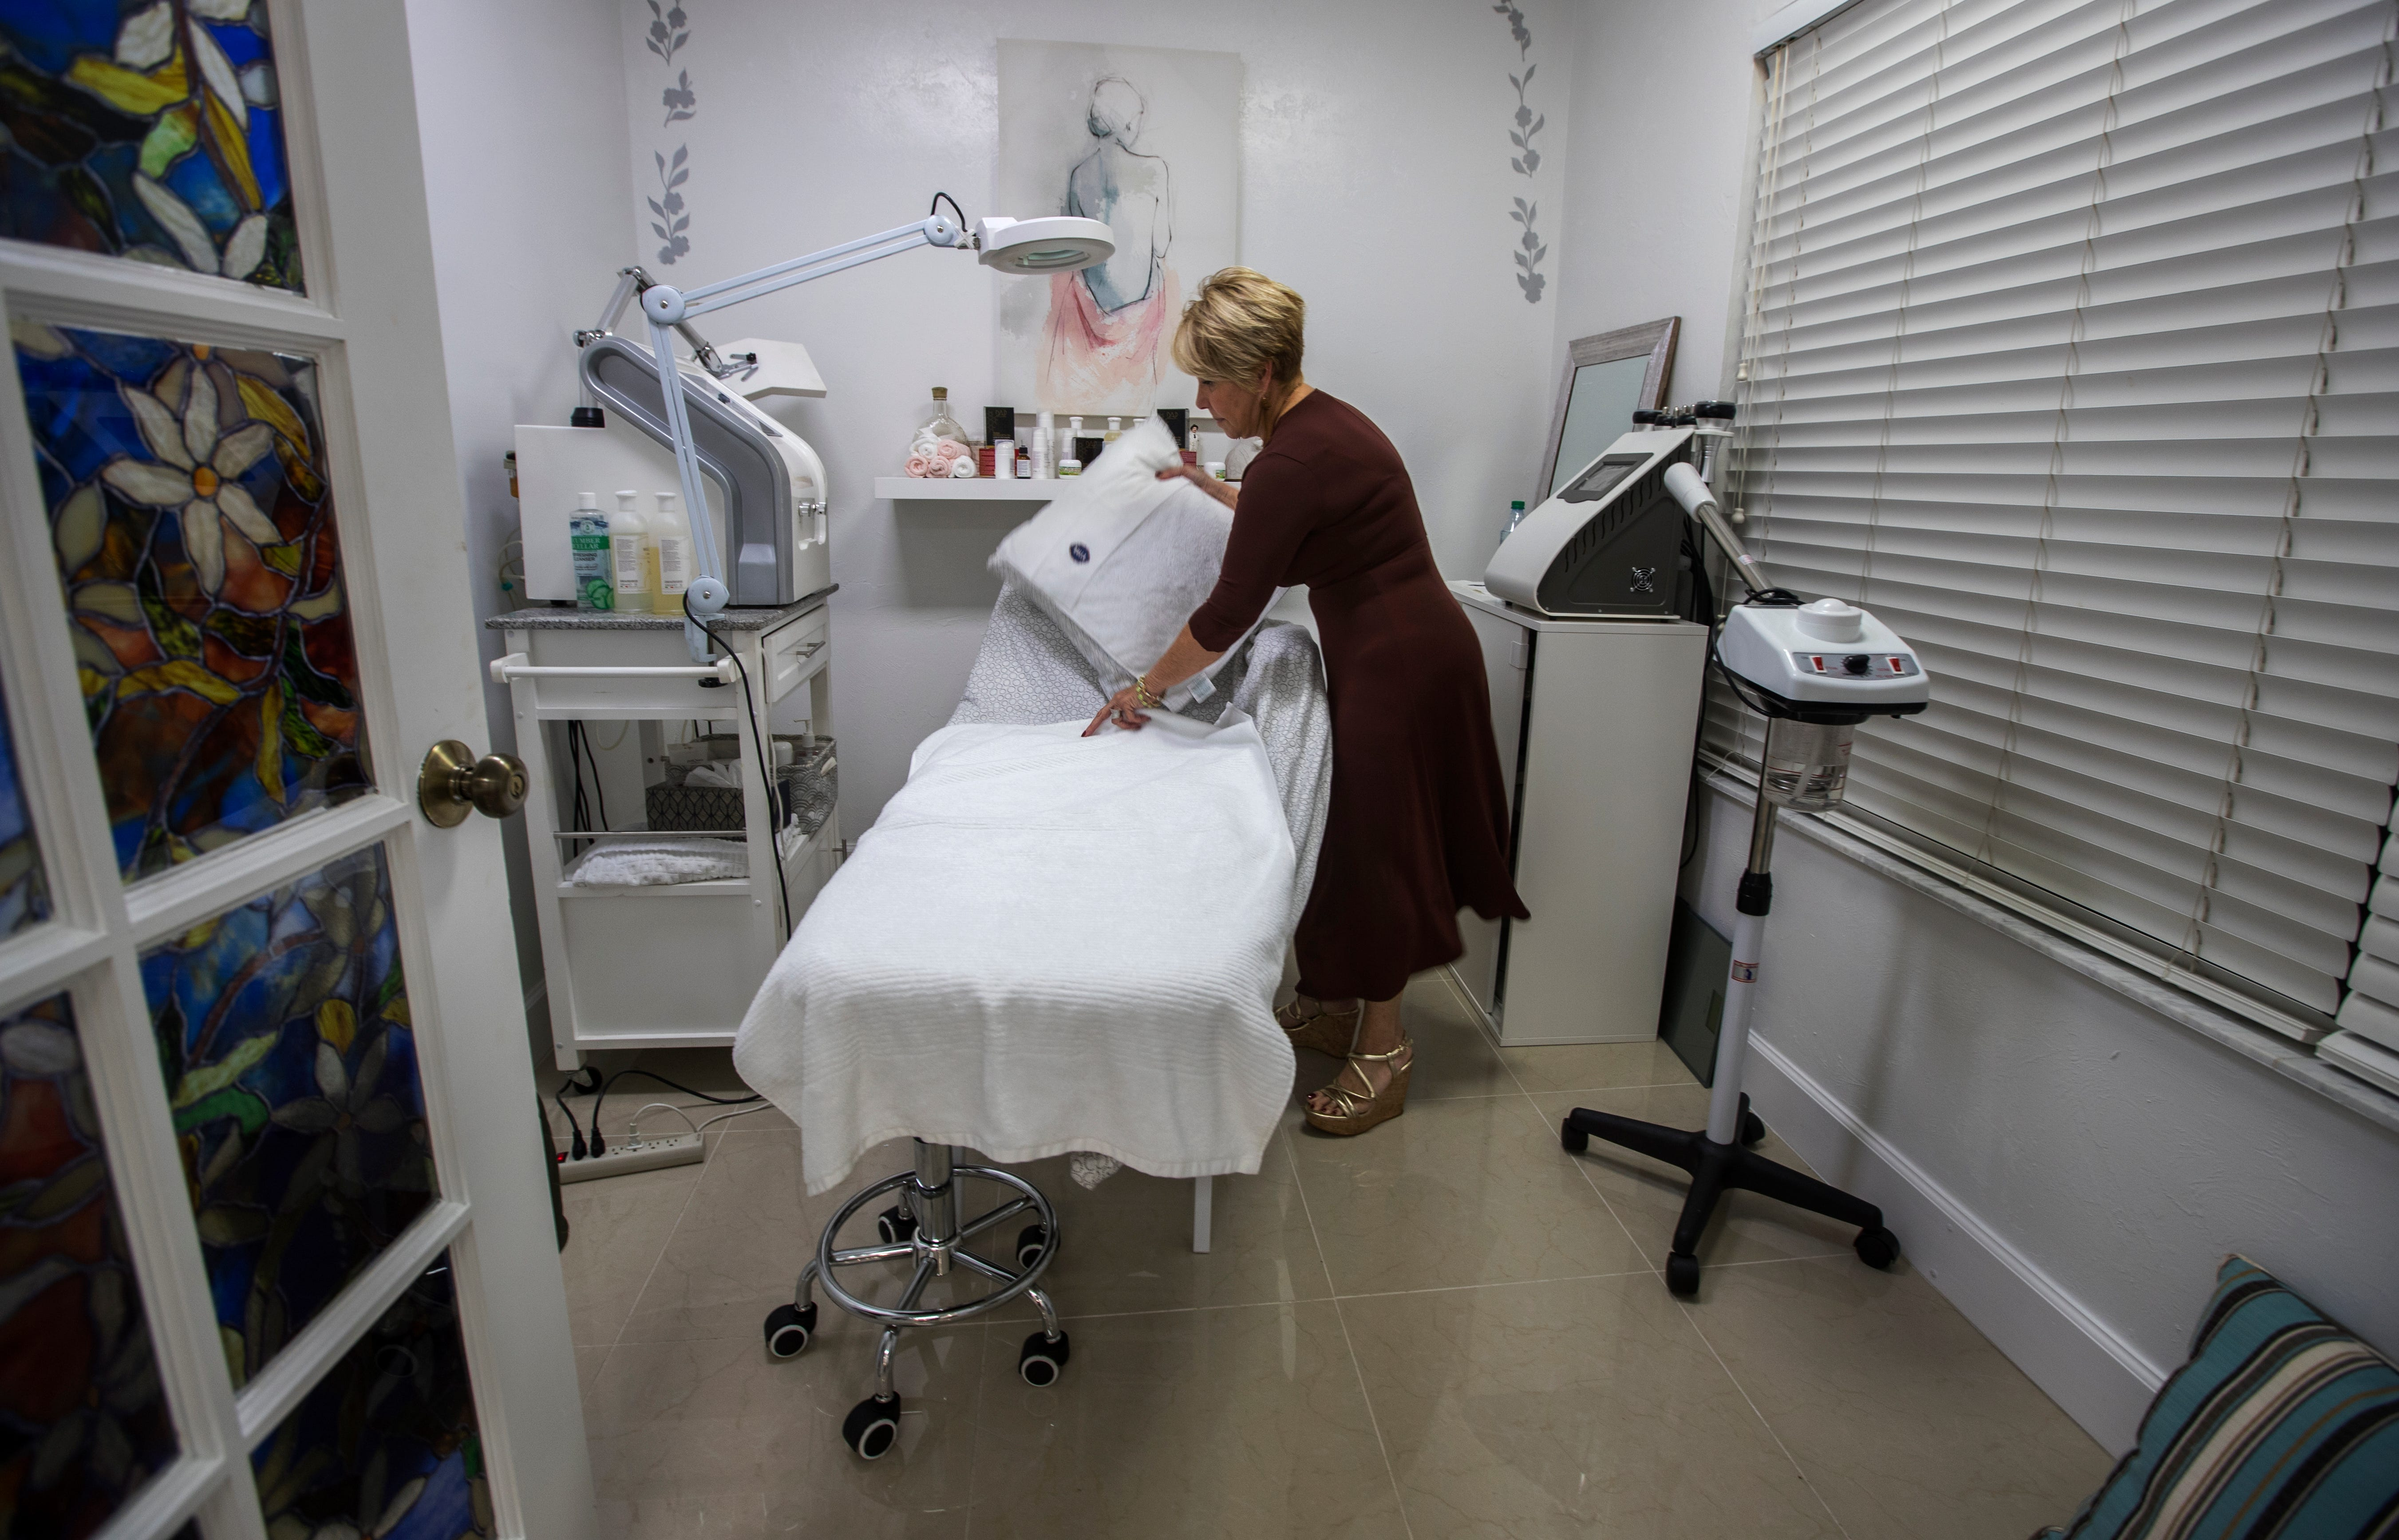 Reina Vogeler, an aesthetician, arranges her work area on Tuesday, April 16 at the Bouquet Beauty Salon in Naples. The business has been open since August 2018. In June 2017, the Florida Department of Law Enforcement raided the previous tenant at this location, Asian Massage of Naples.